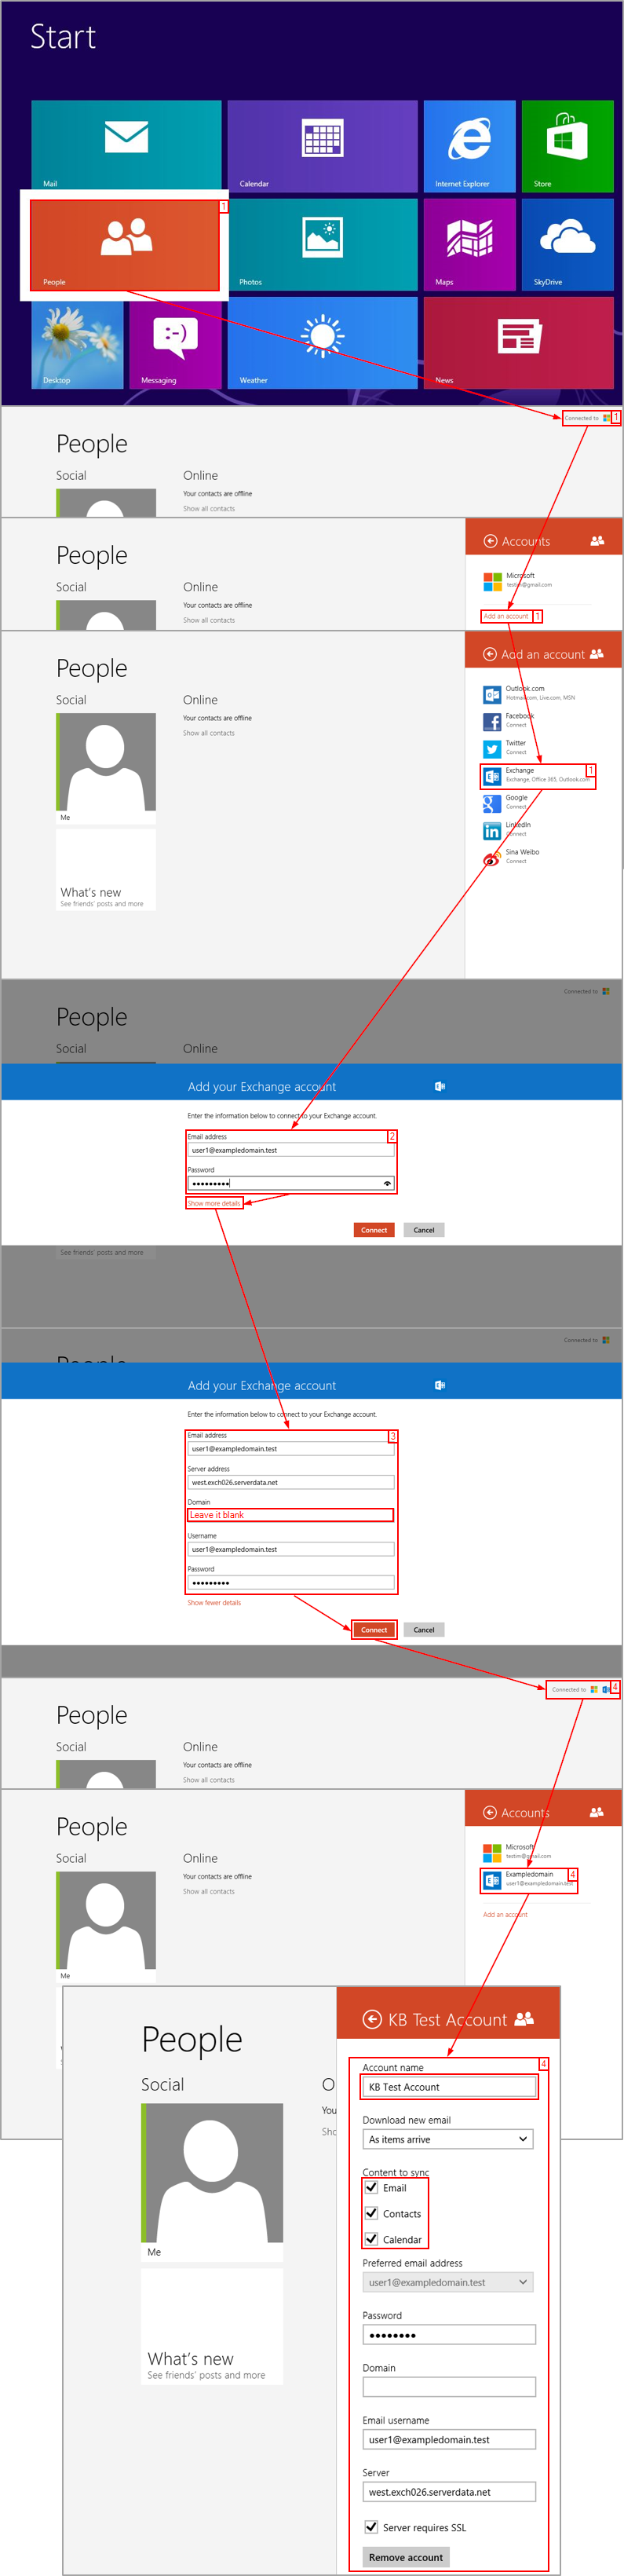 Guide: How To Connect A Wireless Device With Email Account - Intermedia  Knowledge Base